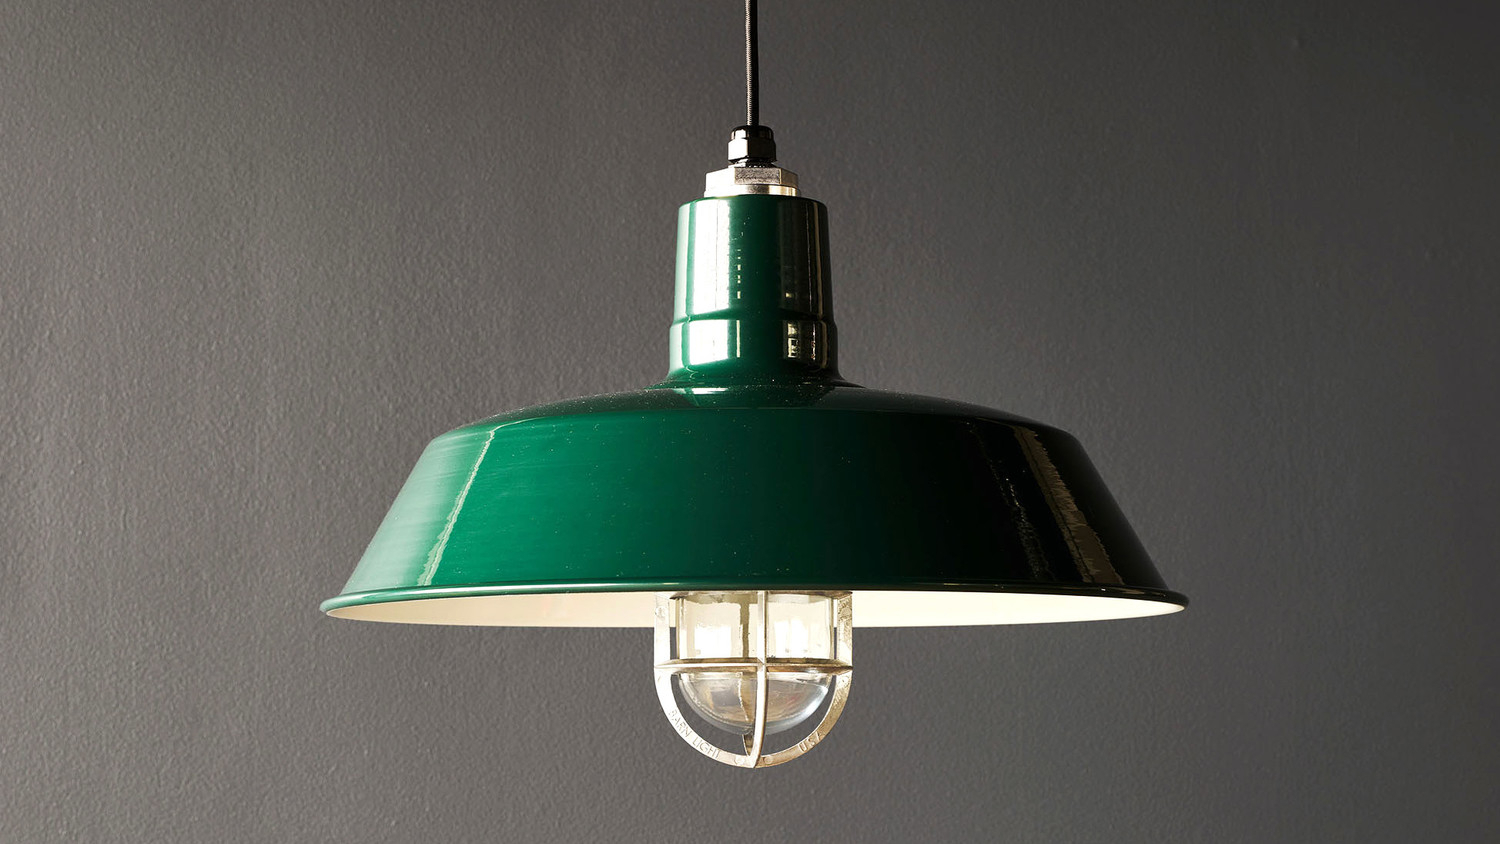 Check Out These Major Bargains: Baugh 1 Light Single Bell With Erico 1 Light Single Bell Pendants (View 19 of 30)